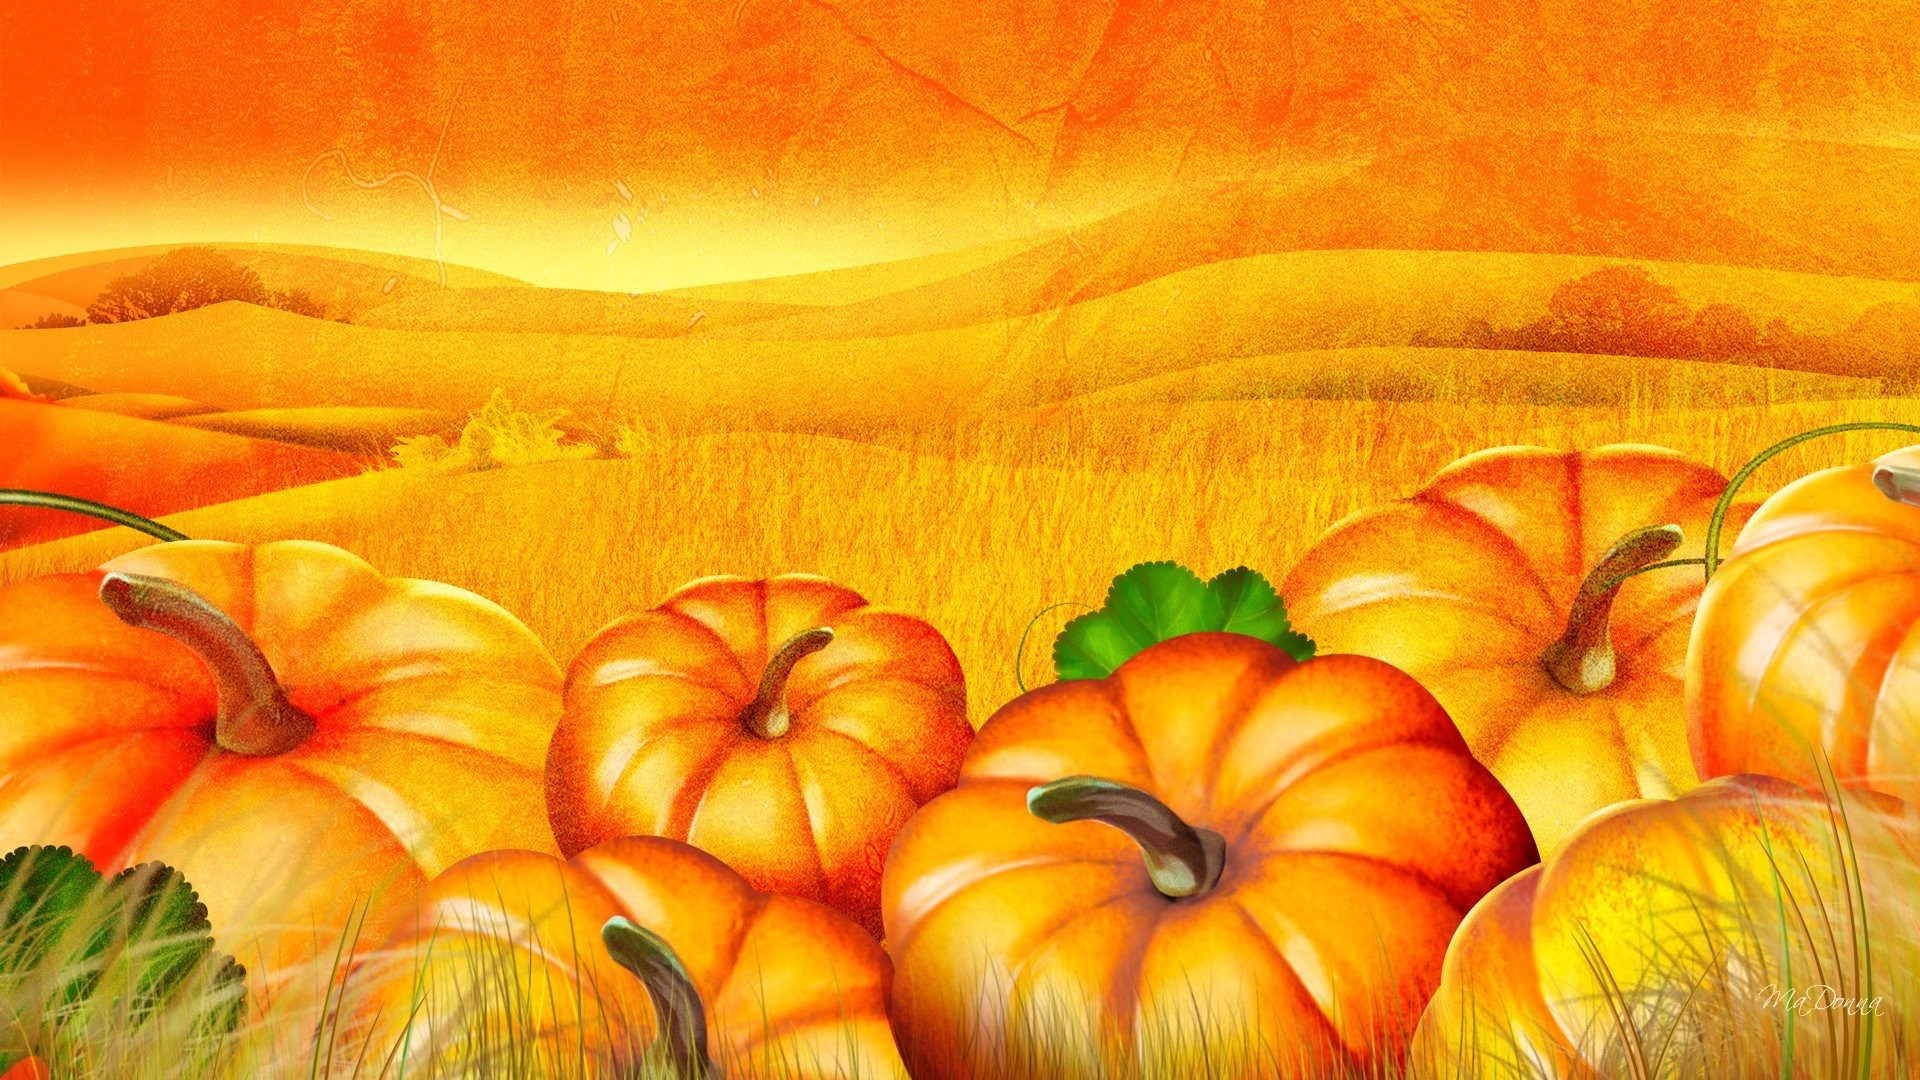 Pumpkin background ·① download free full hd backgrounds